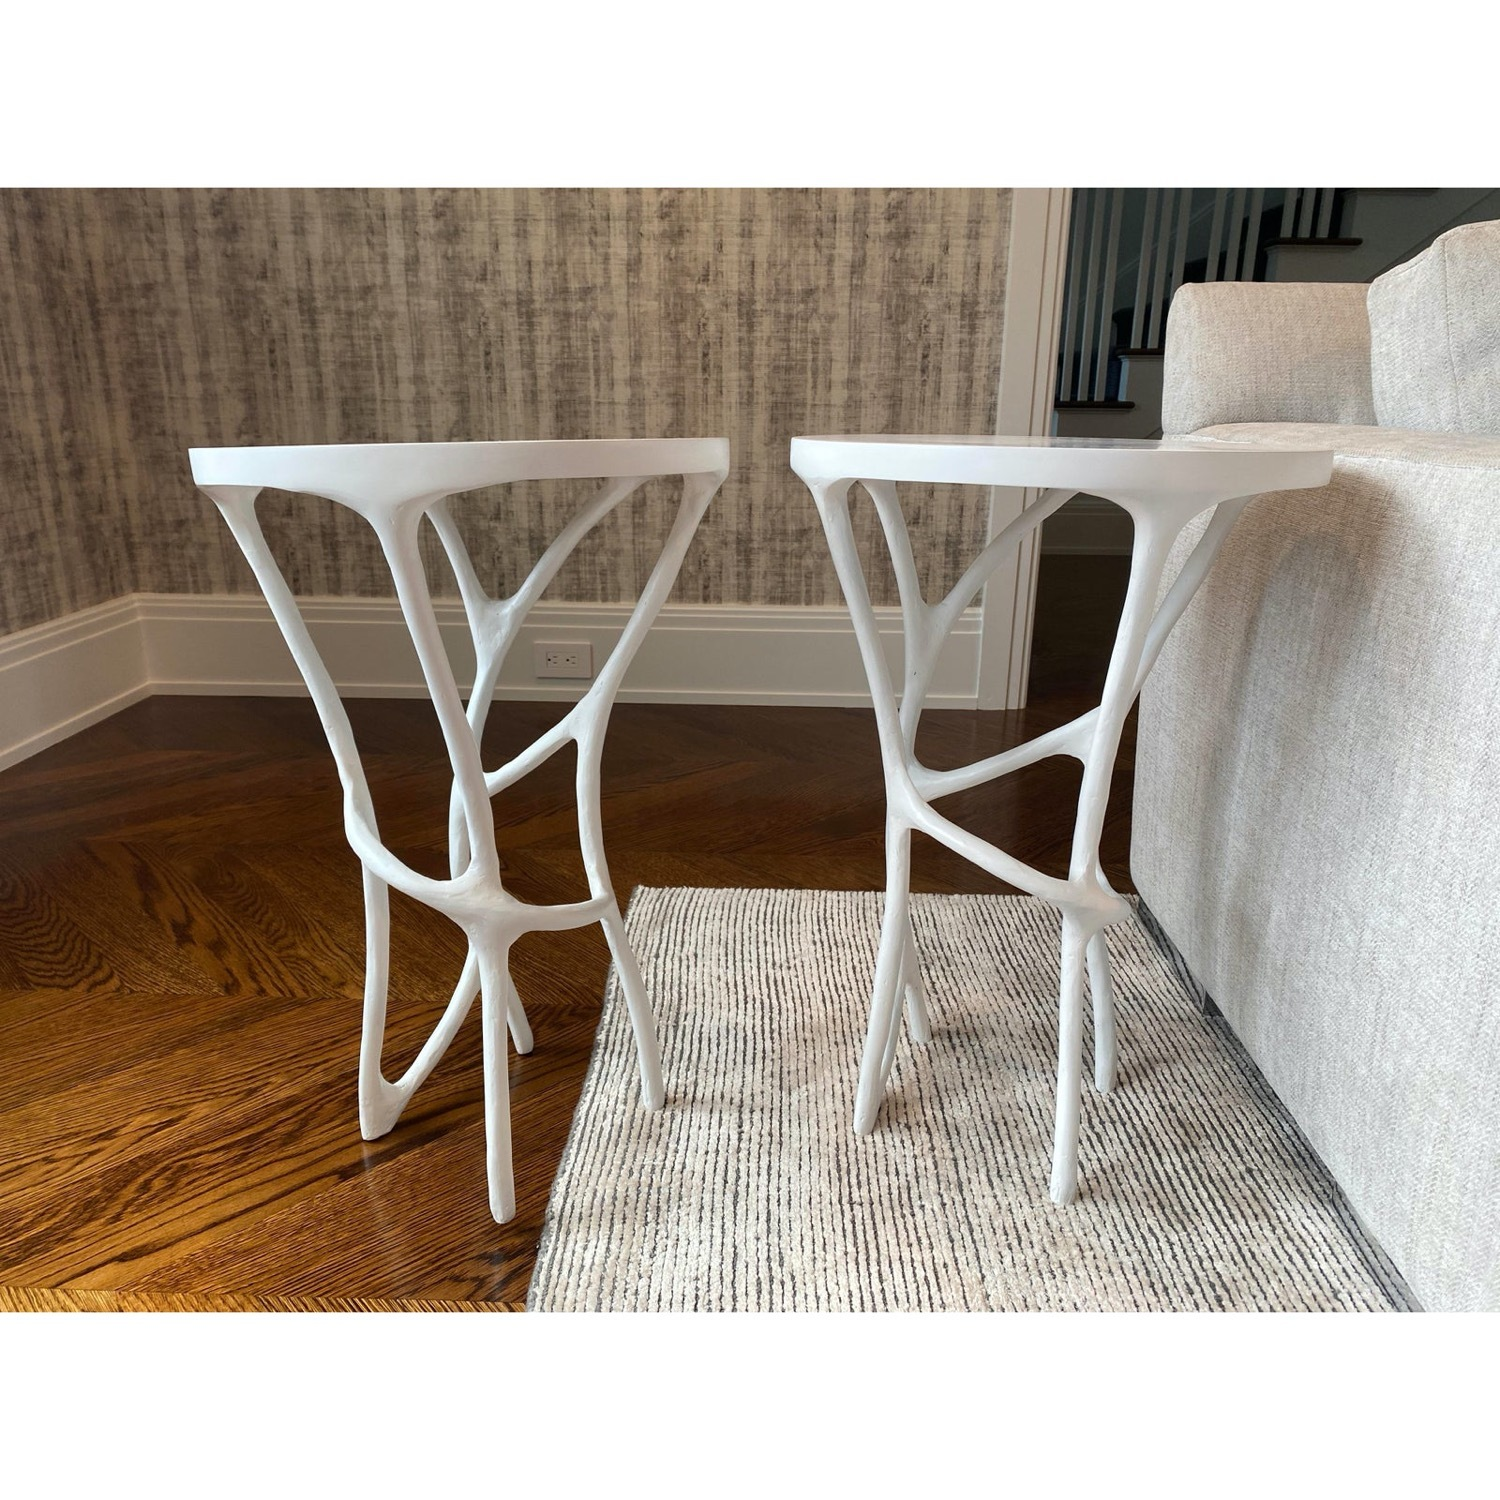 Made Good Iron-Resin Side Tables - image-2